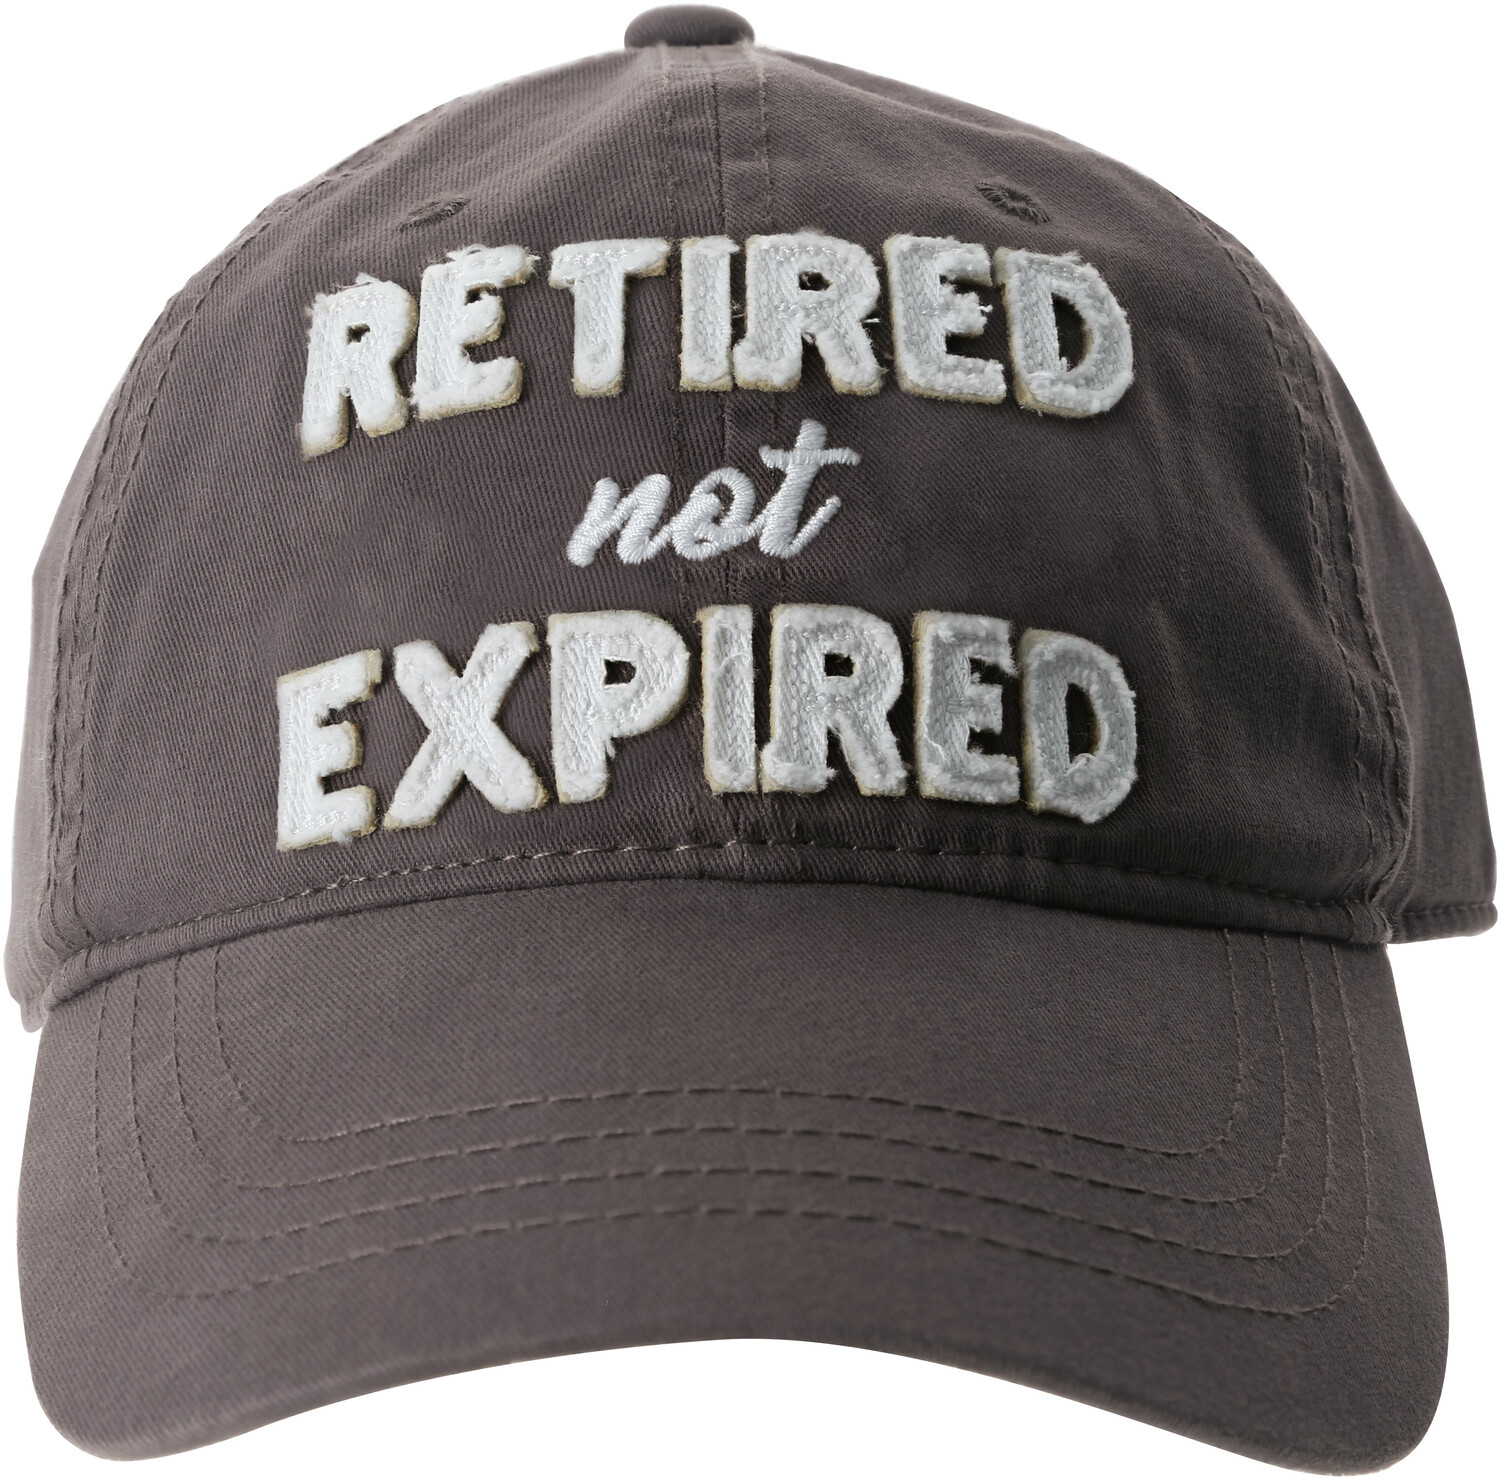 Not Expired by Retired Life - Not Expired - Gray Adjustable Hat